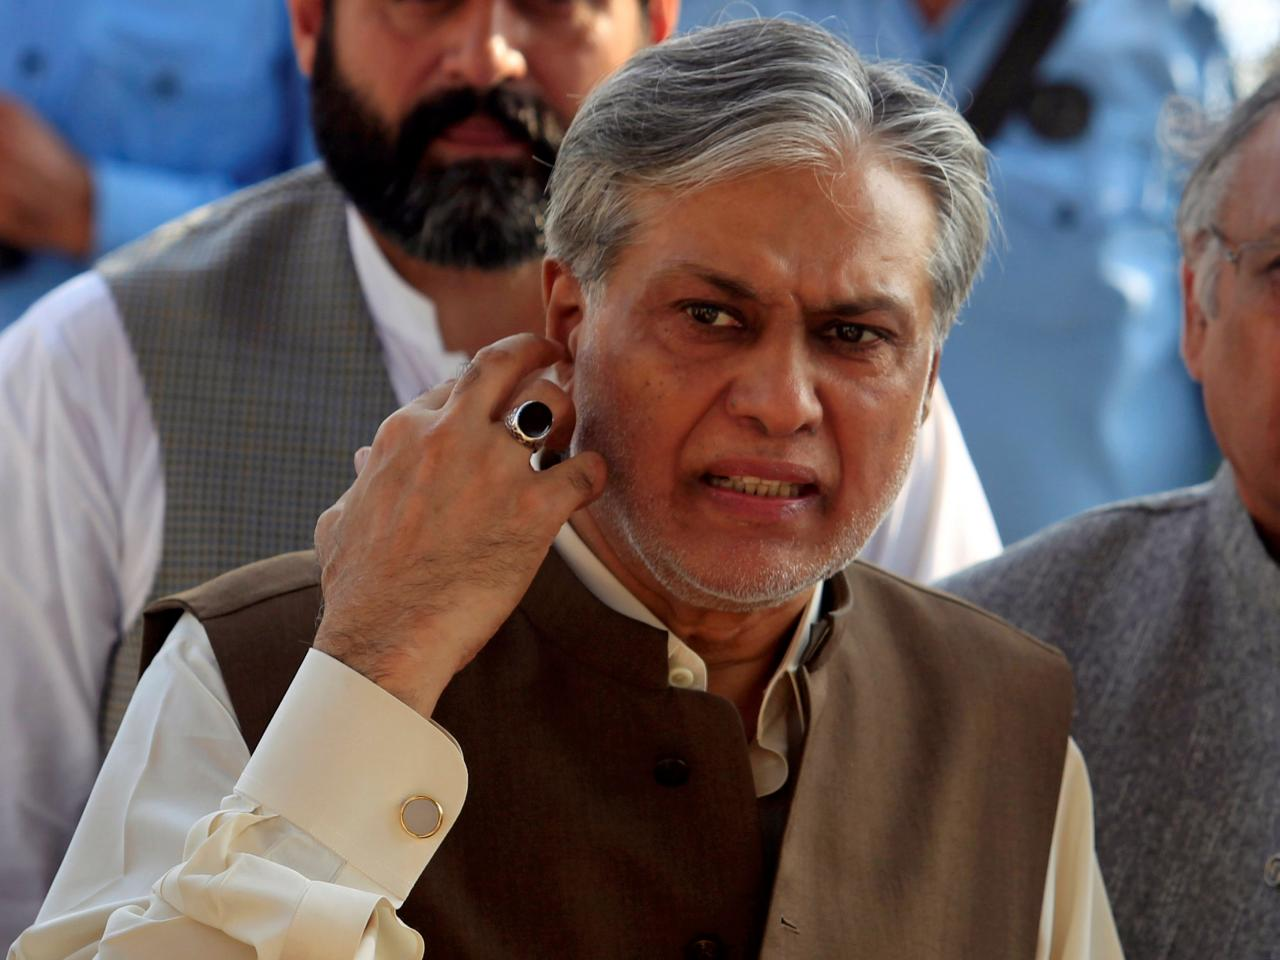 Ishaq Dar likely to lose ministerial slot